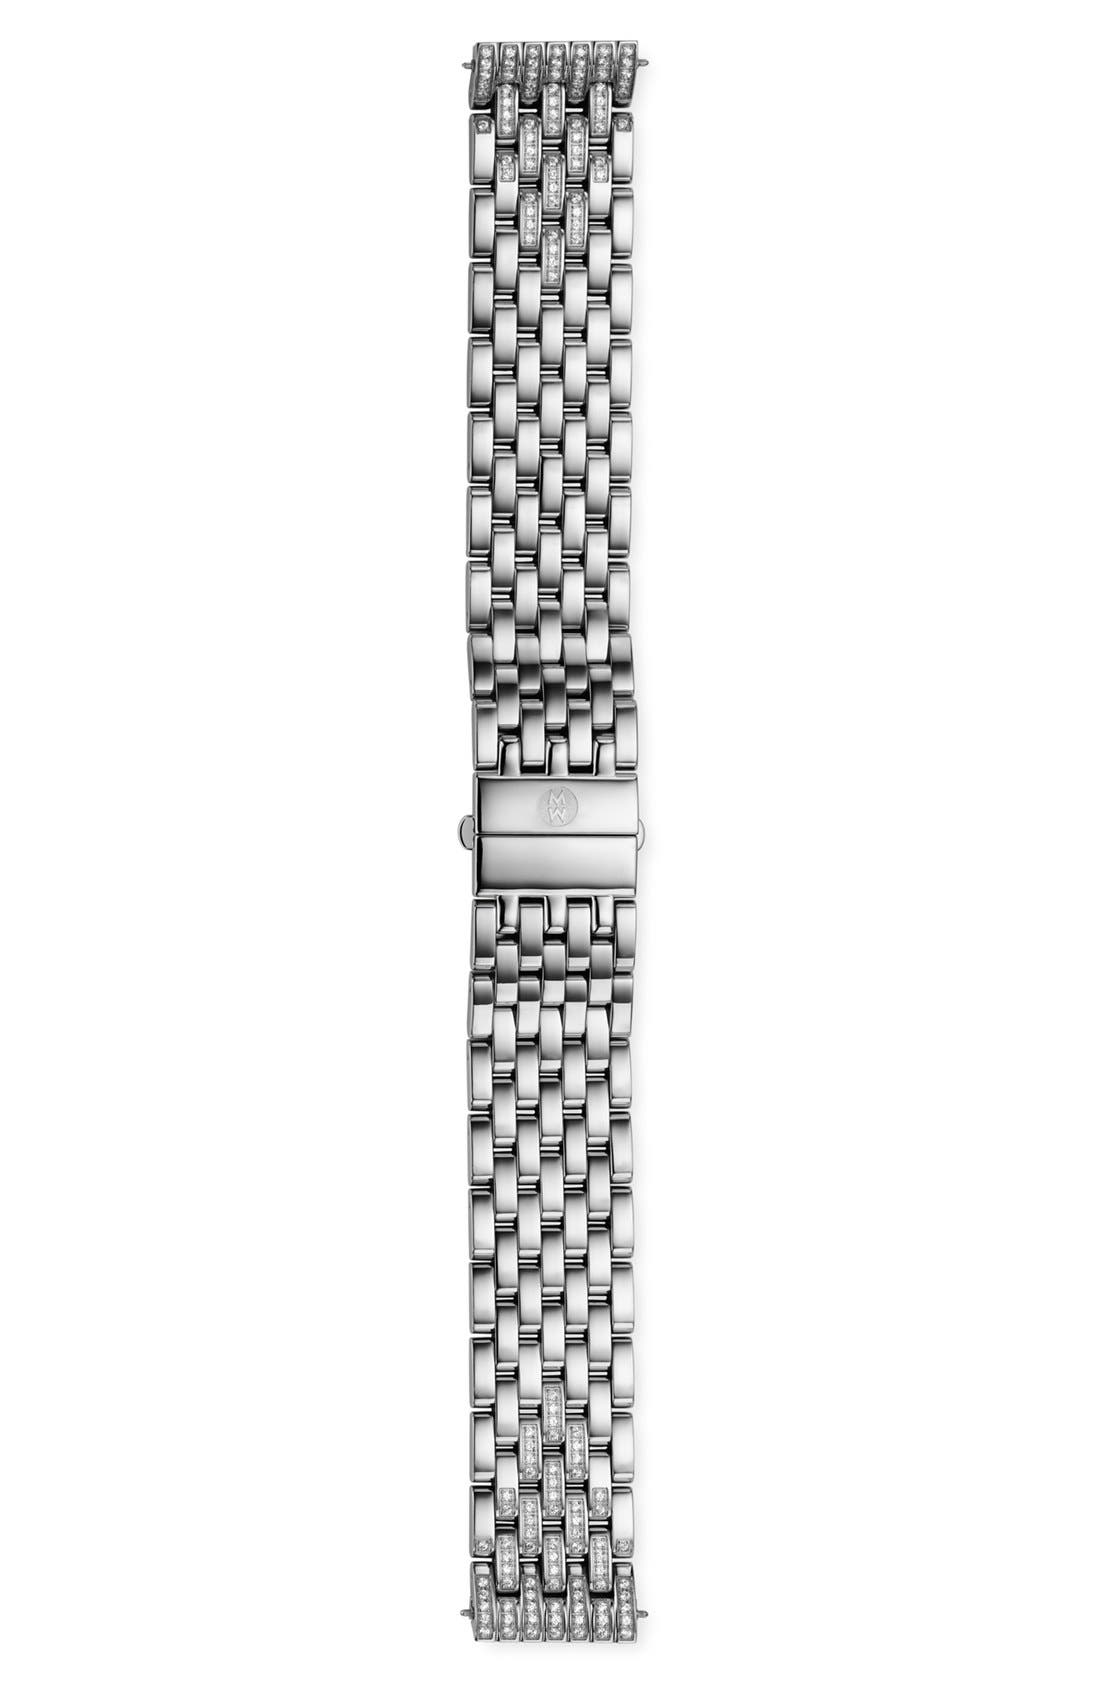 Alternate Image 1 Selected - MICHELE 'Deco' 18mm Diamond Bracelet Band